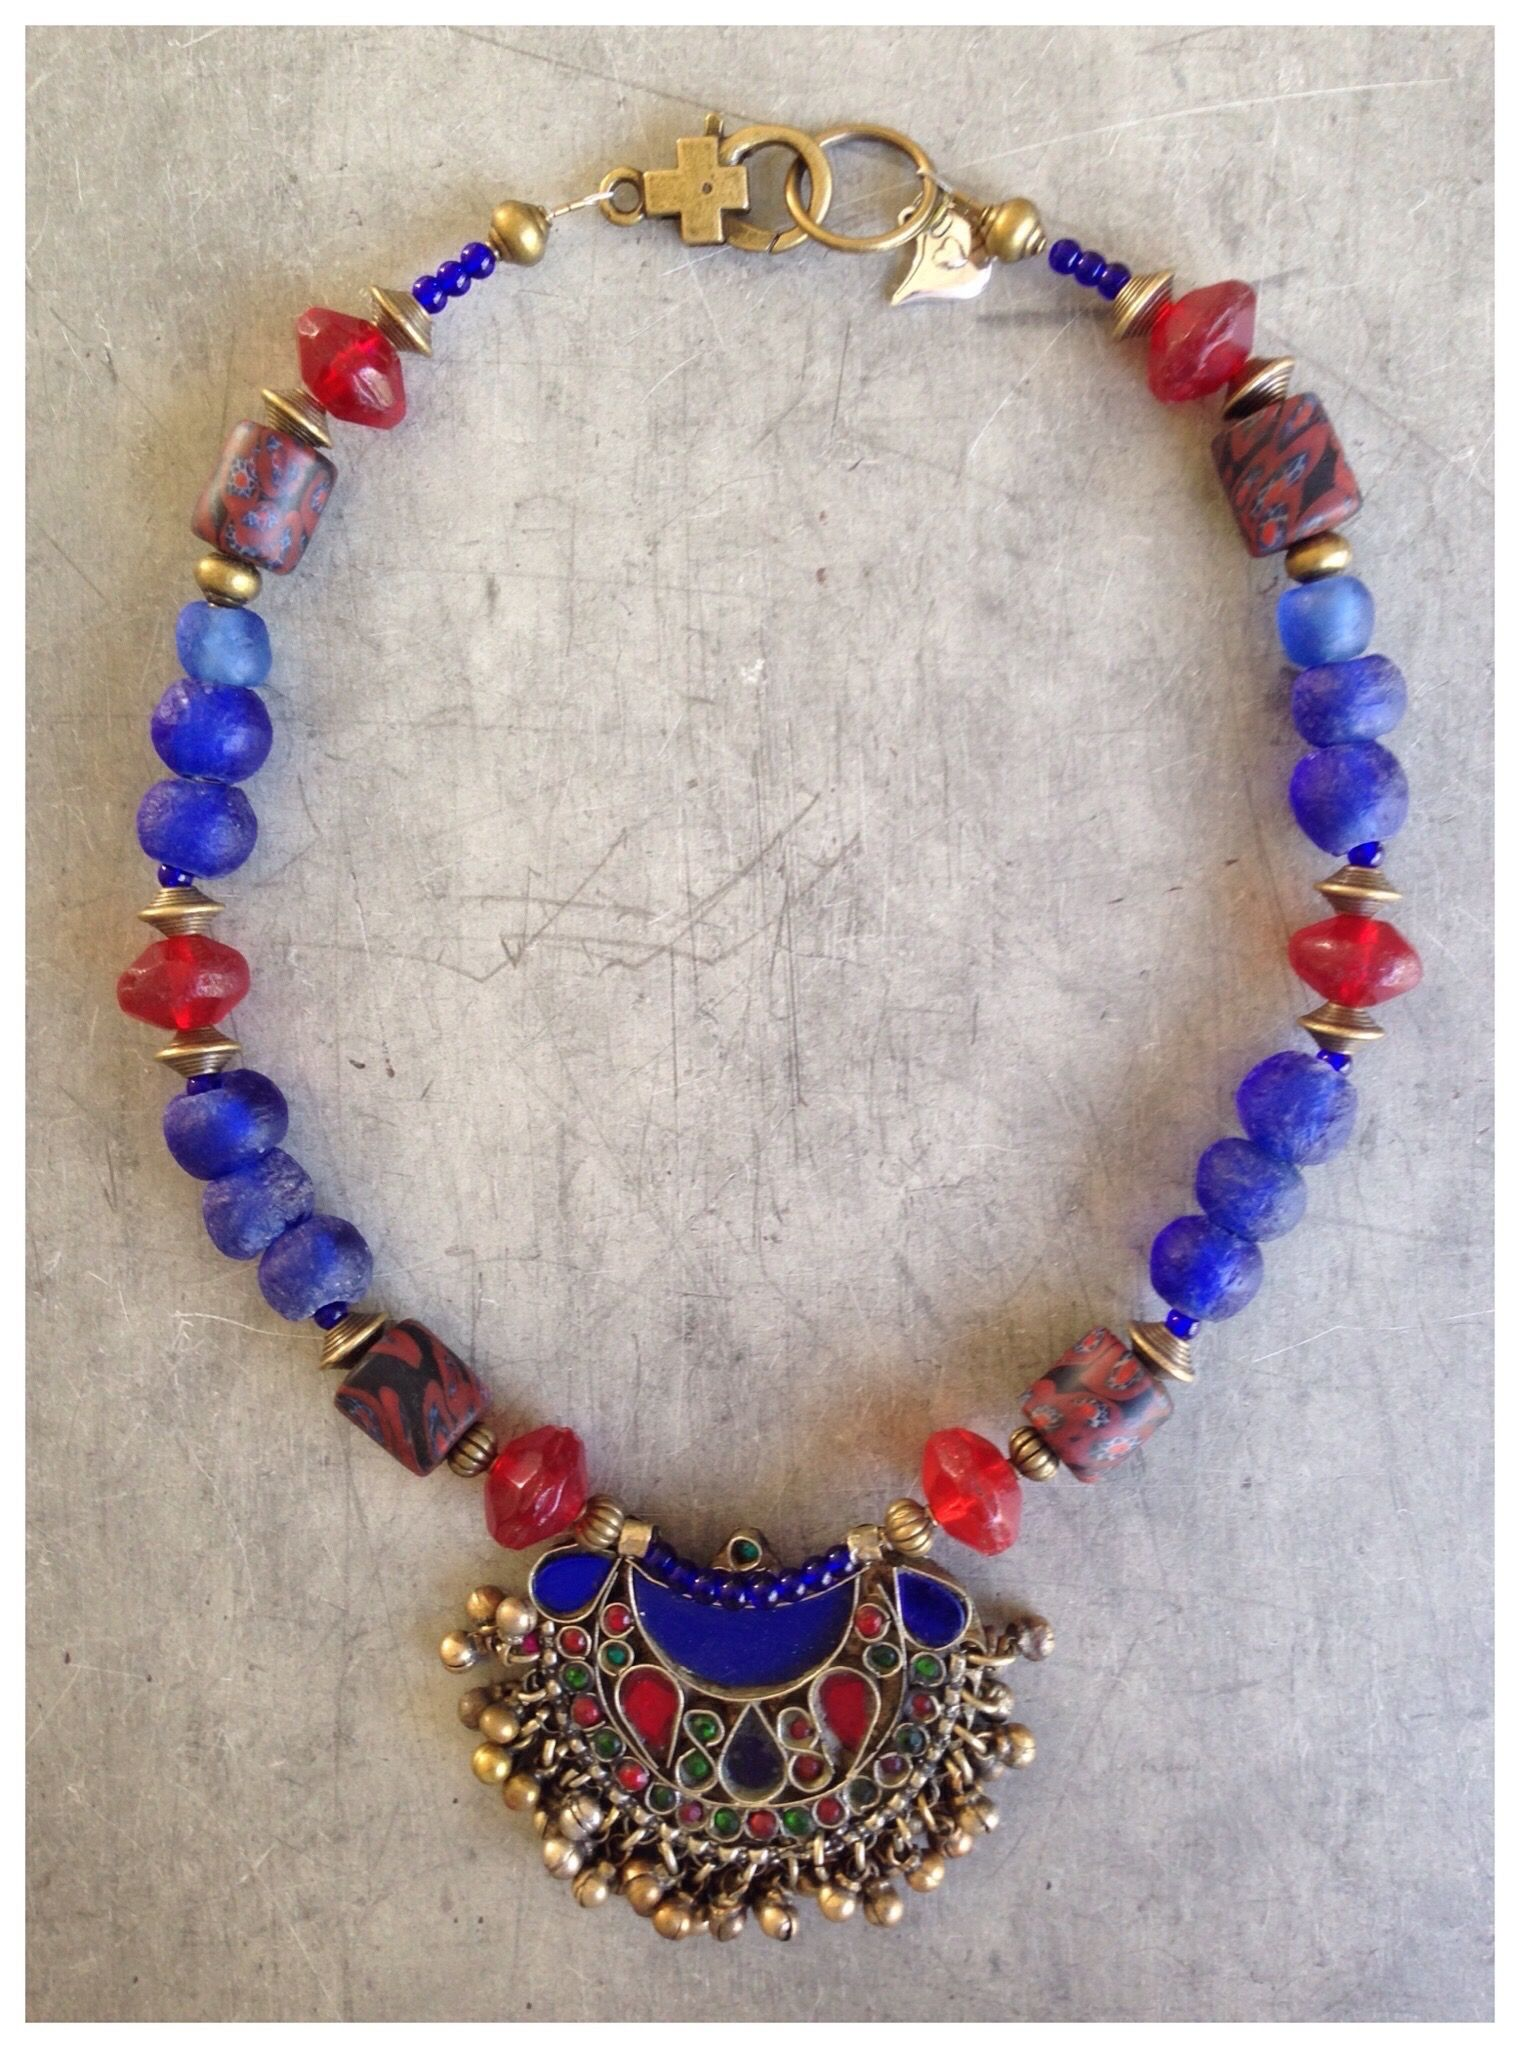 Contemporary tribal necklace with vintage trade beads and Kuchi pendant by Birdie Hill